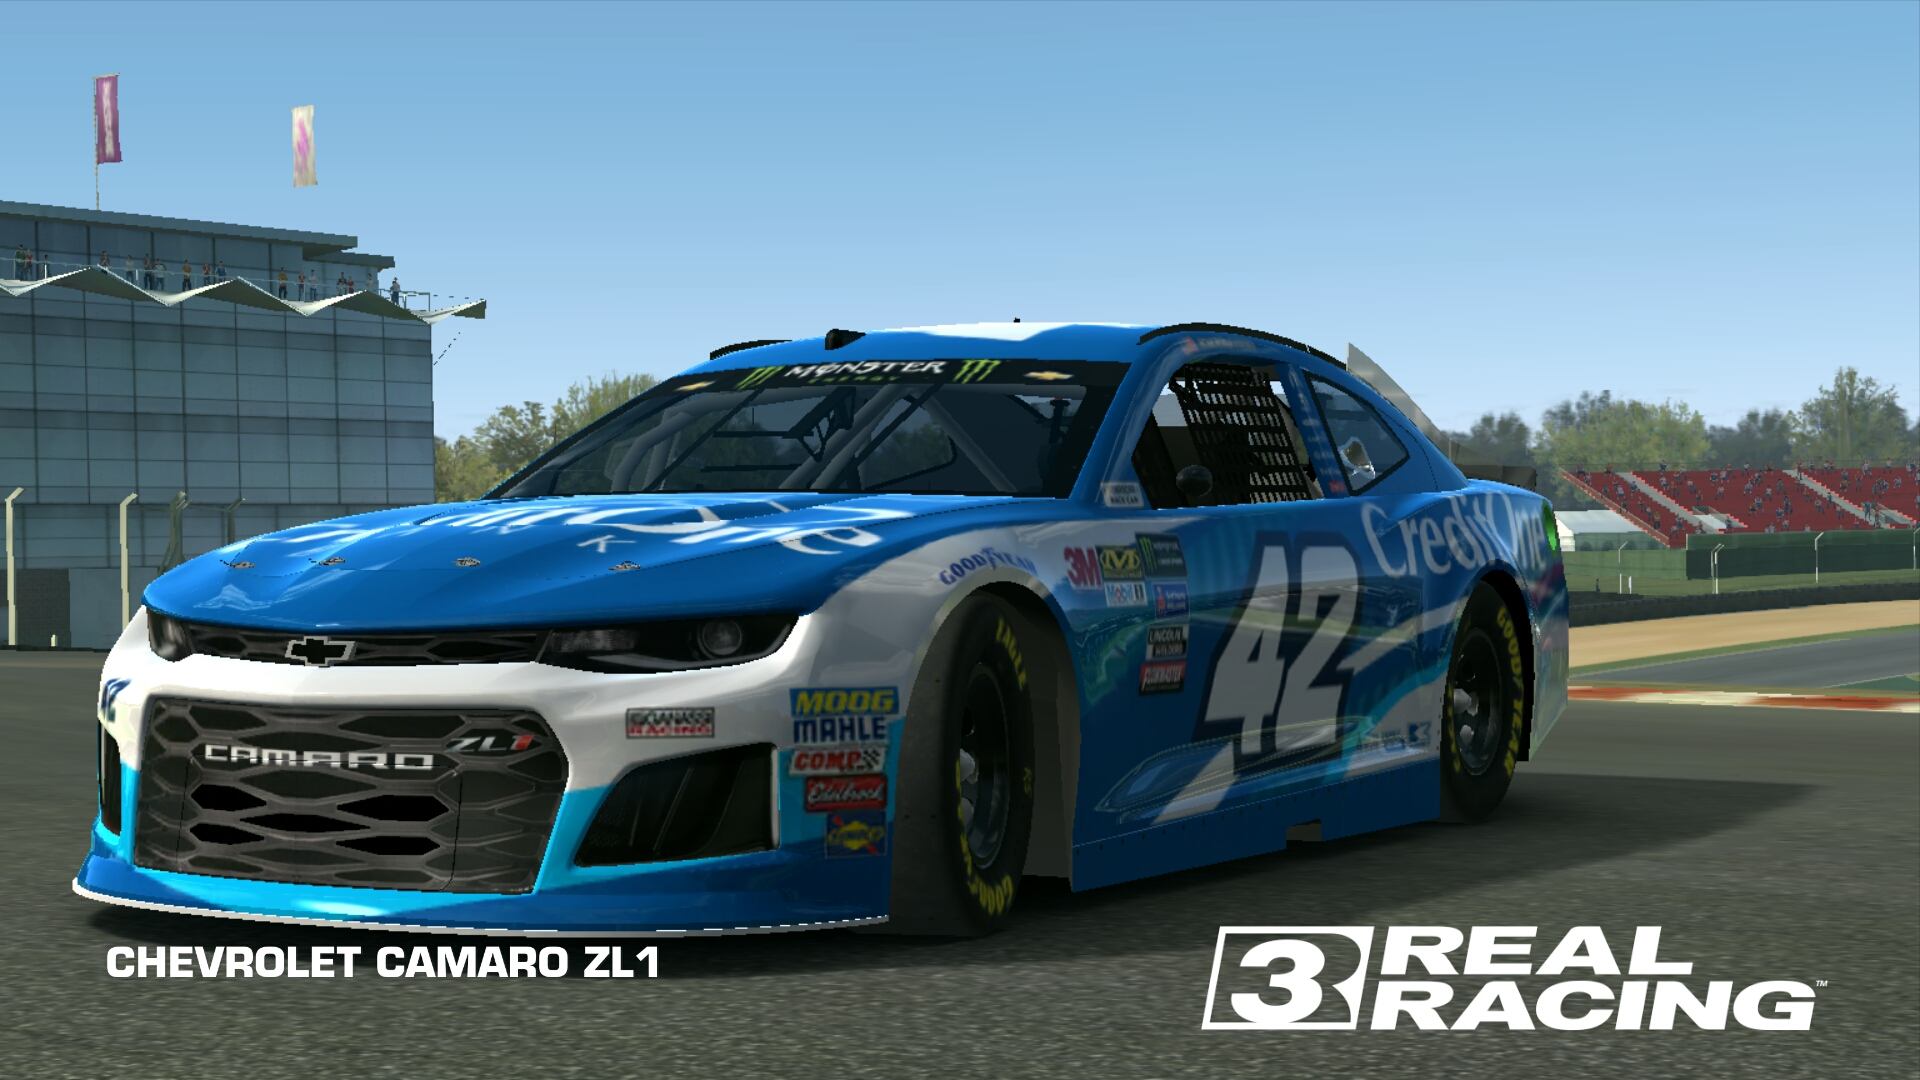 CHEVROLET CAMARO ZL1 (2018) | Real Racing 3 Wiki | Fandom